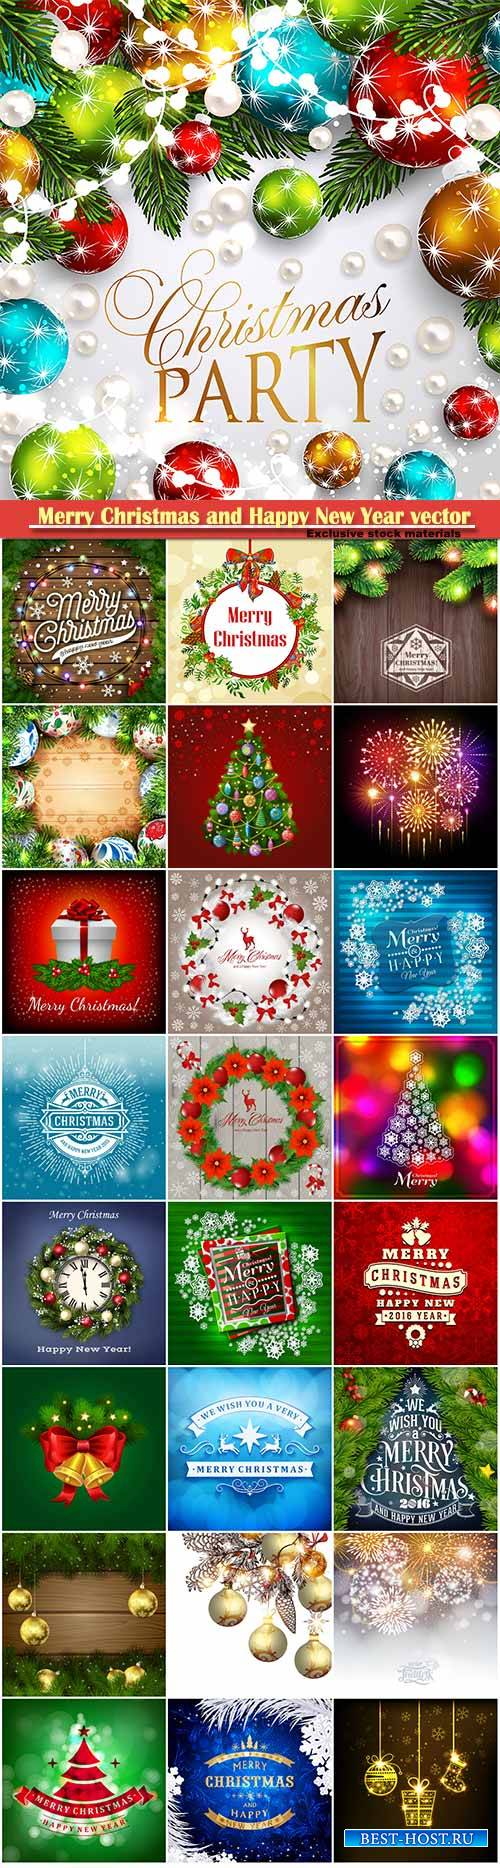 Merry Christmas and Happy New Year vector design # 18